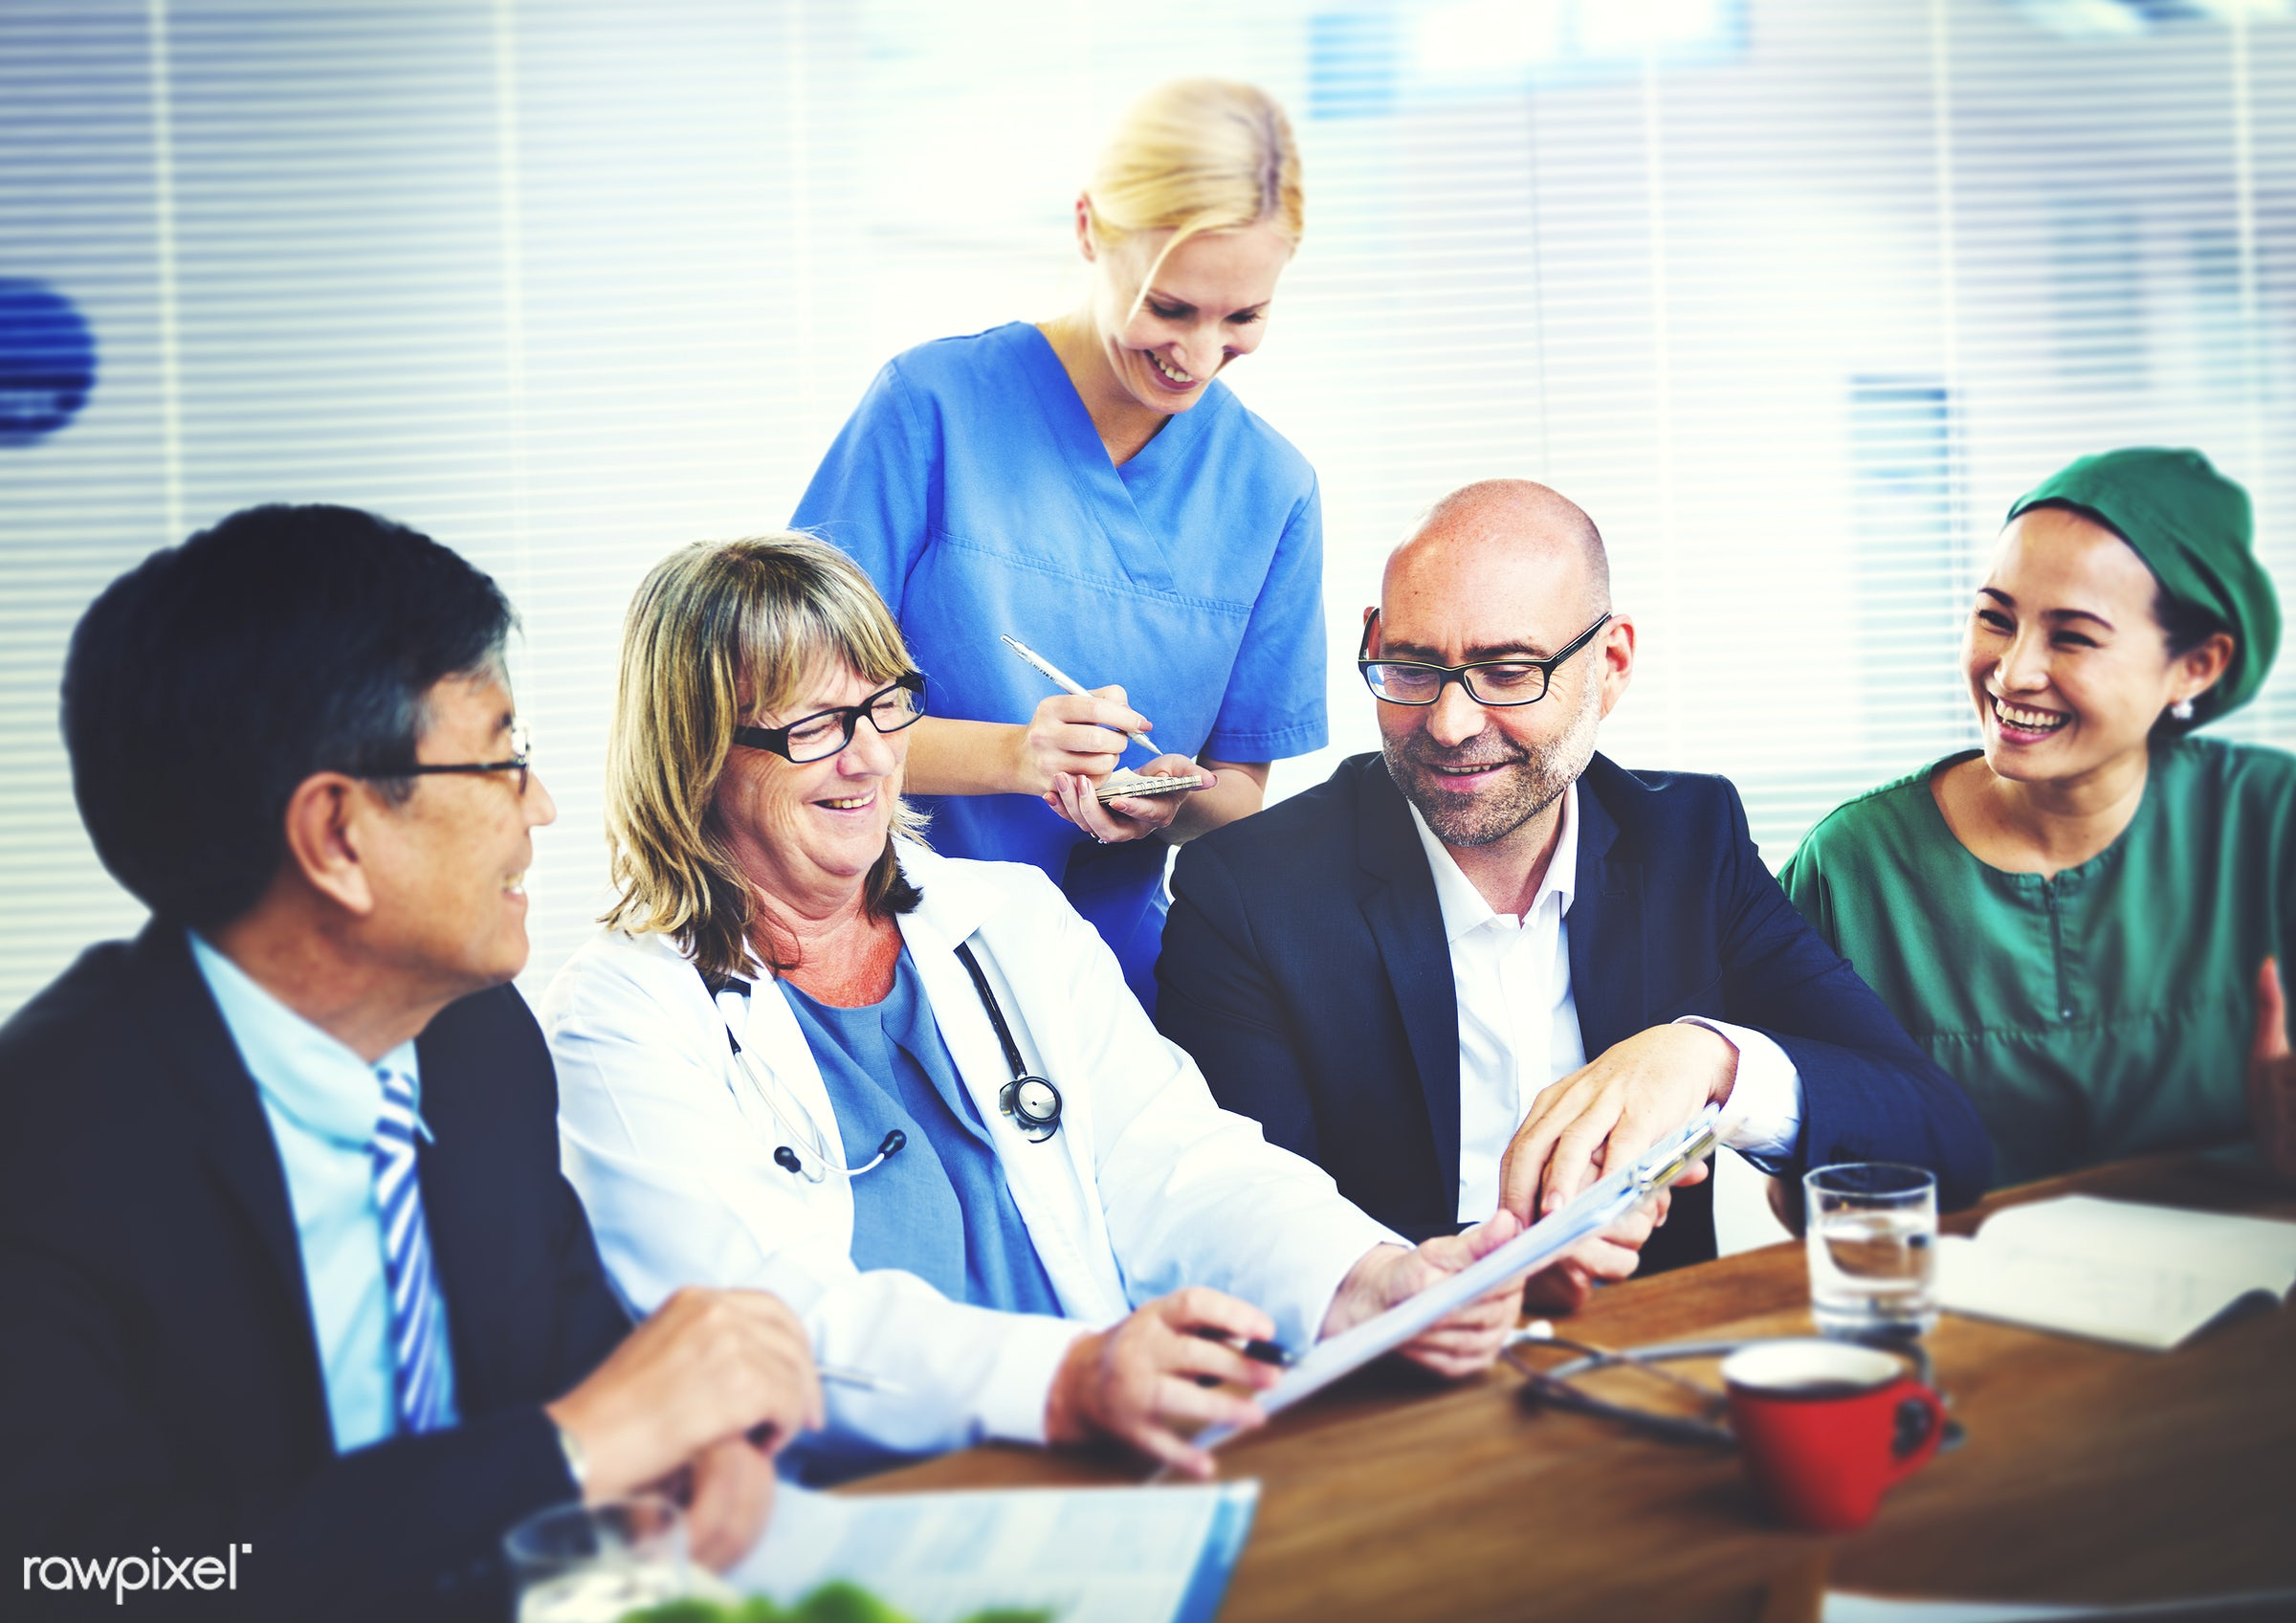 asian, caucasian, colleagues, diverse, doctor, group, healthcare, medical, nurses, people, team, teamwork, together,...